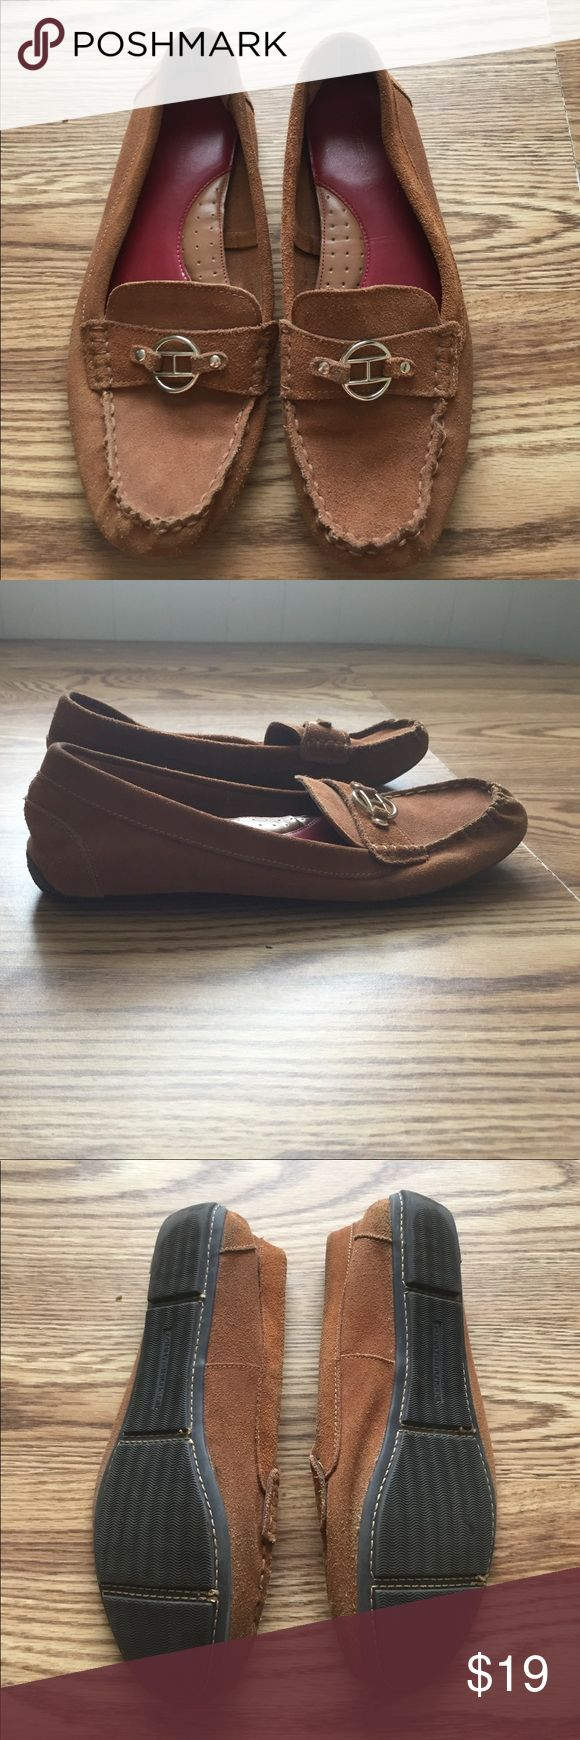 Suede driving loafers Tan suede moccasin type driving loafer. Super comfy with arch support. Worn a few times, my foot grew once I had a baby (yes, it can happen) so they no longer fit. Oddly there is no size 'stamp' on the shoe but they're a Womens 9. Tommy Hilfiger Shoes Moccasins